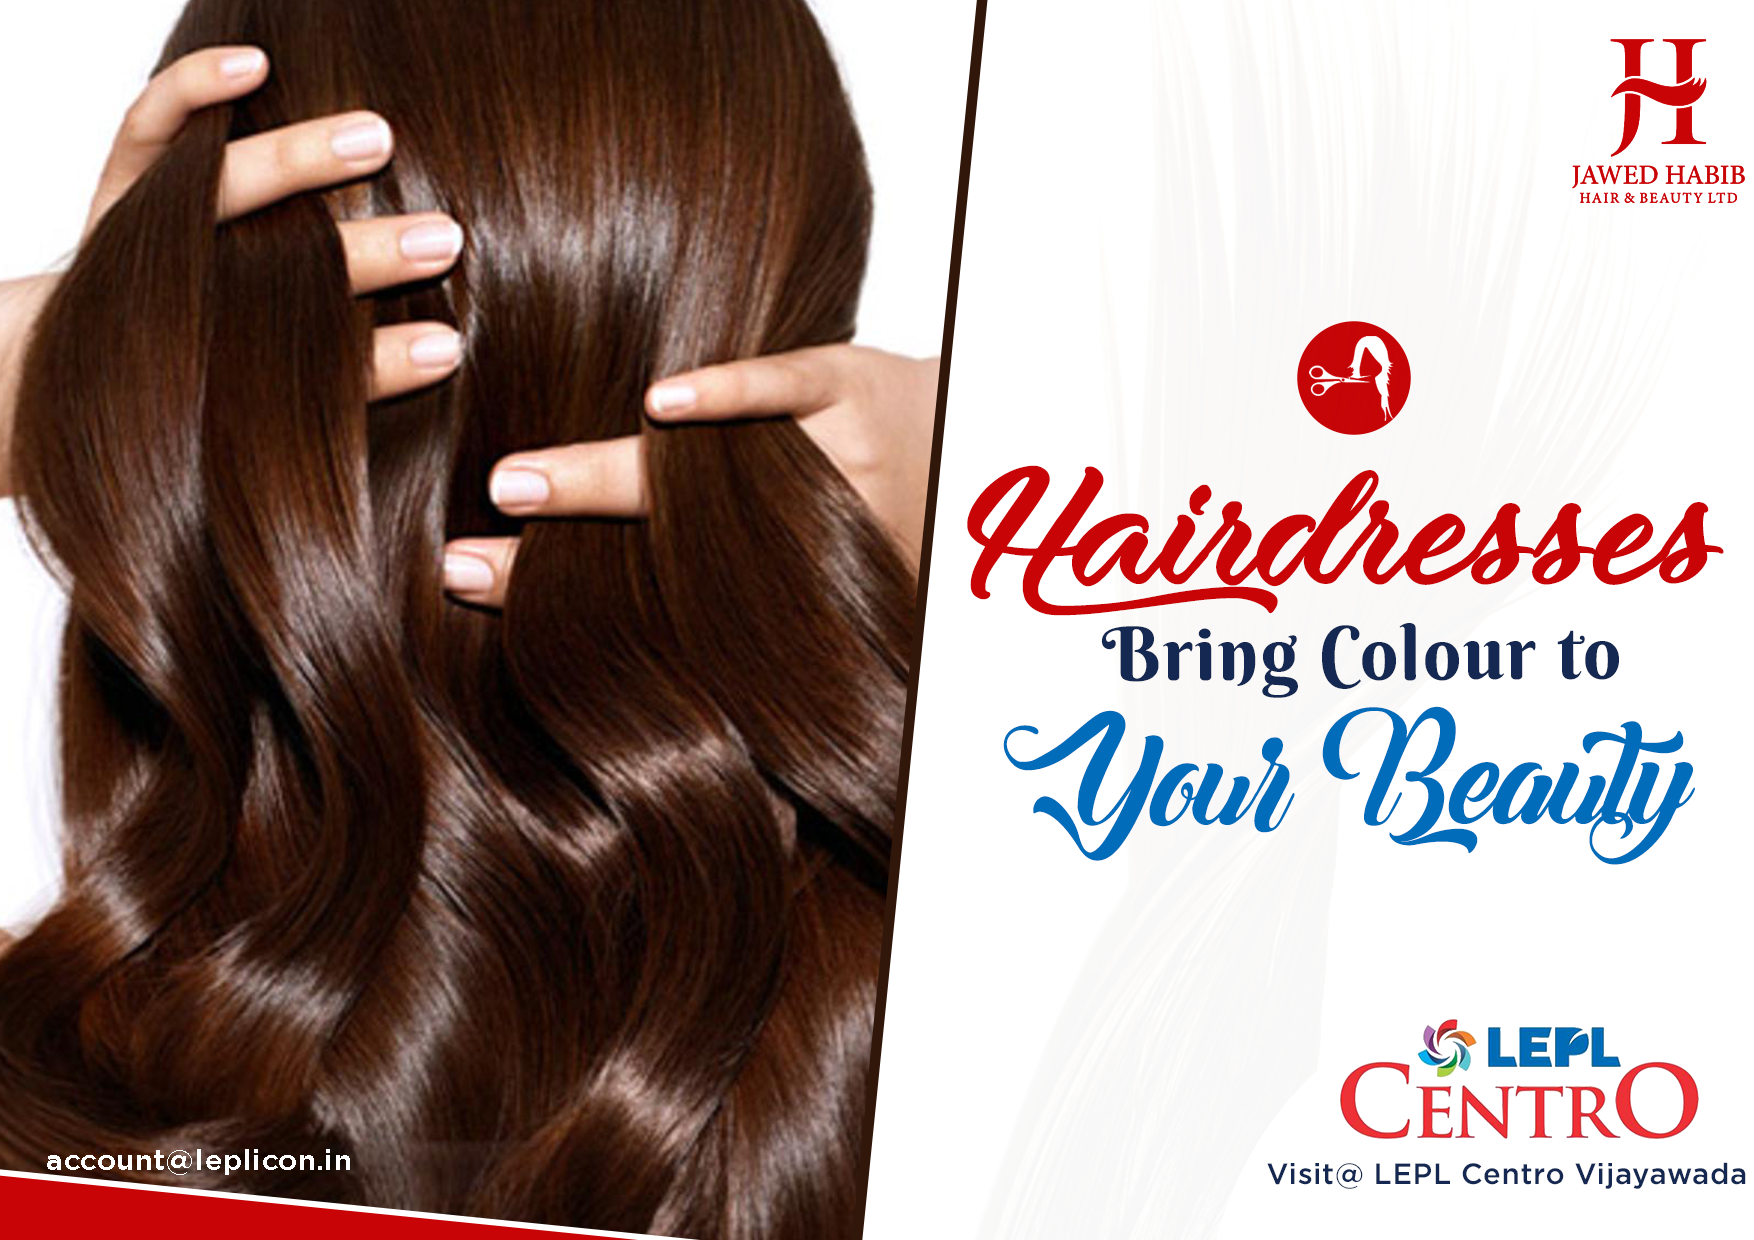 Book Your Appointment Today In Jawed Habib S One Of The Largest Chains Of Unisex Salons In The Country In Lepl Centro Vija Unisex Salon Hair Trends Hair Beauty